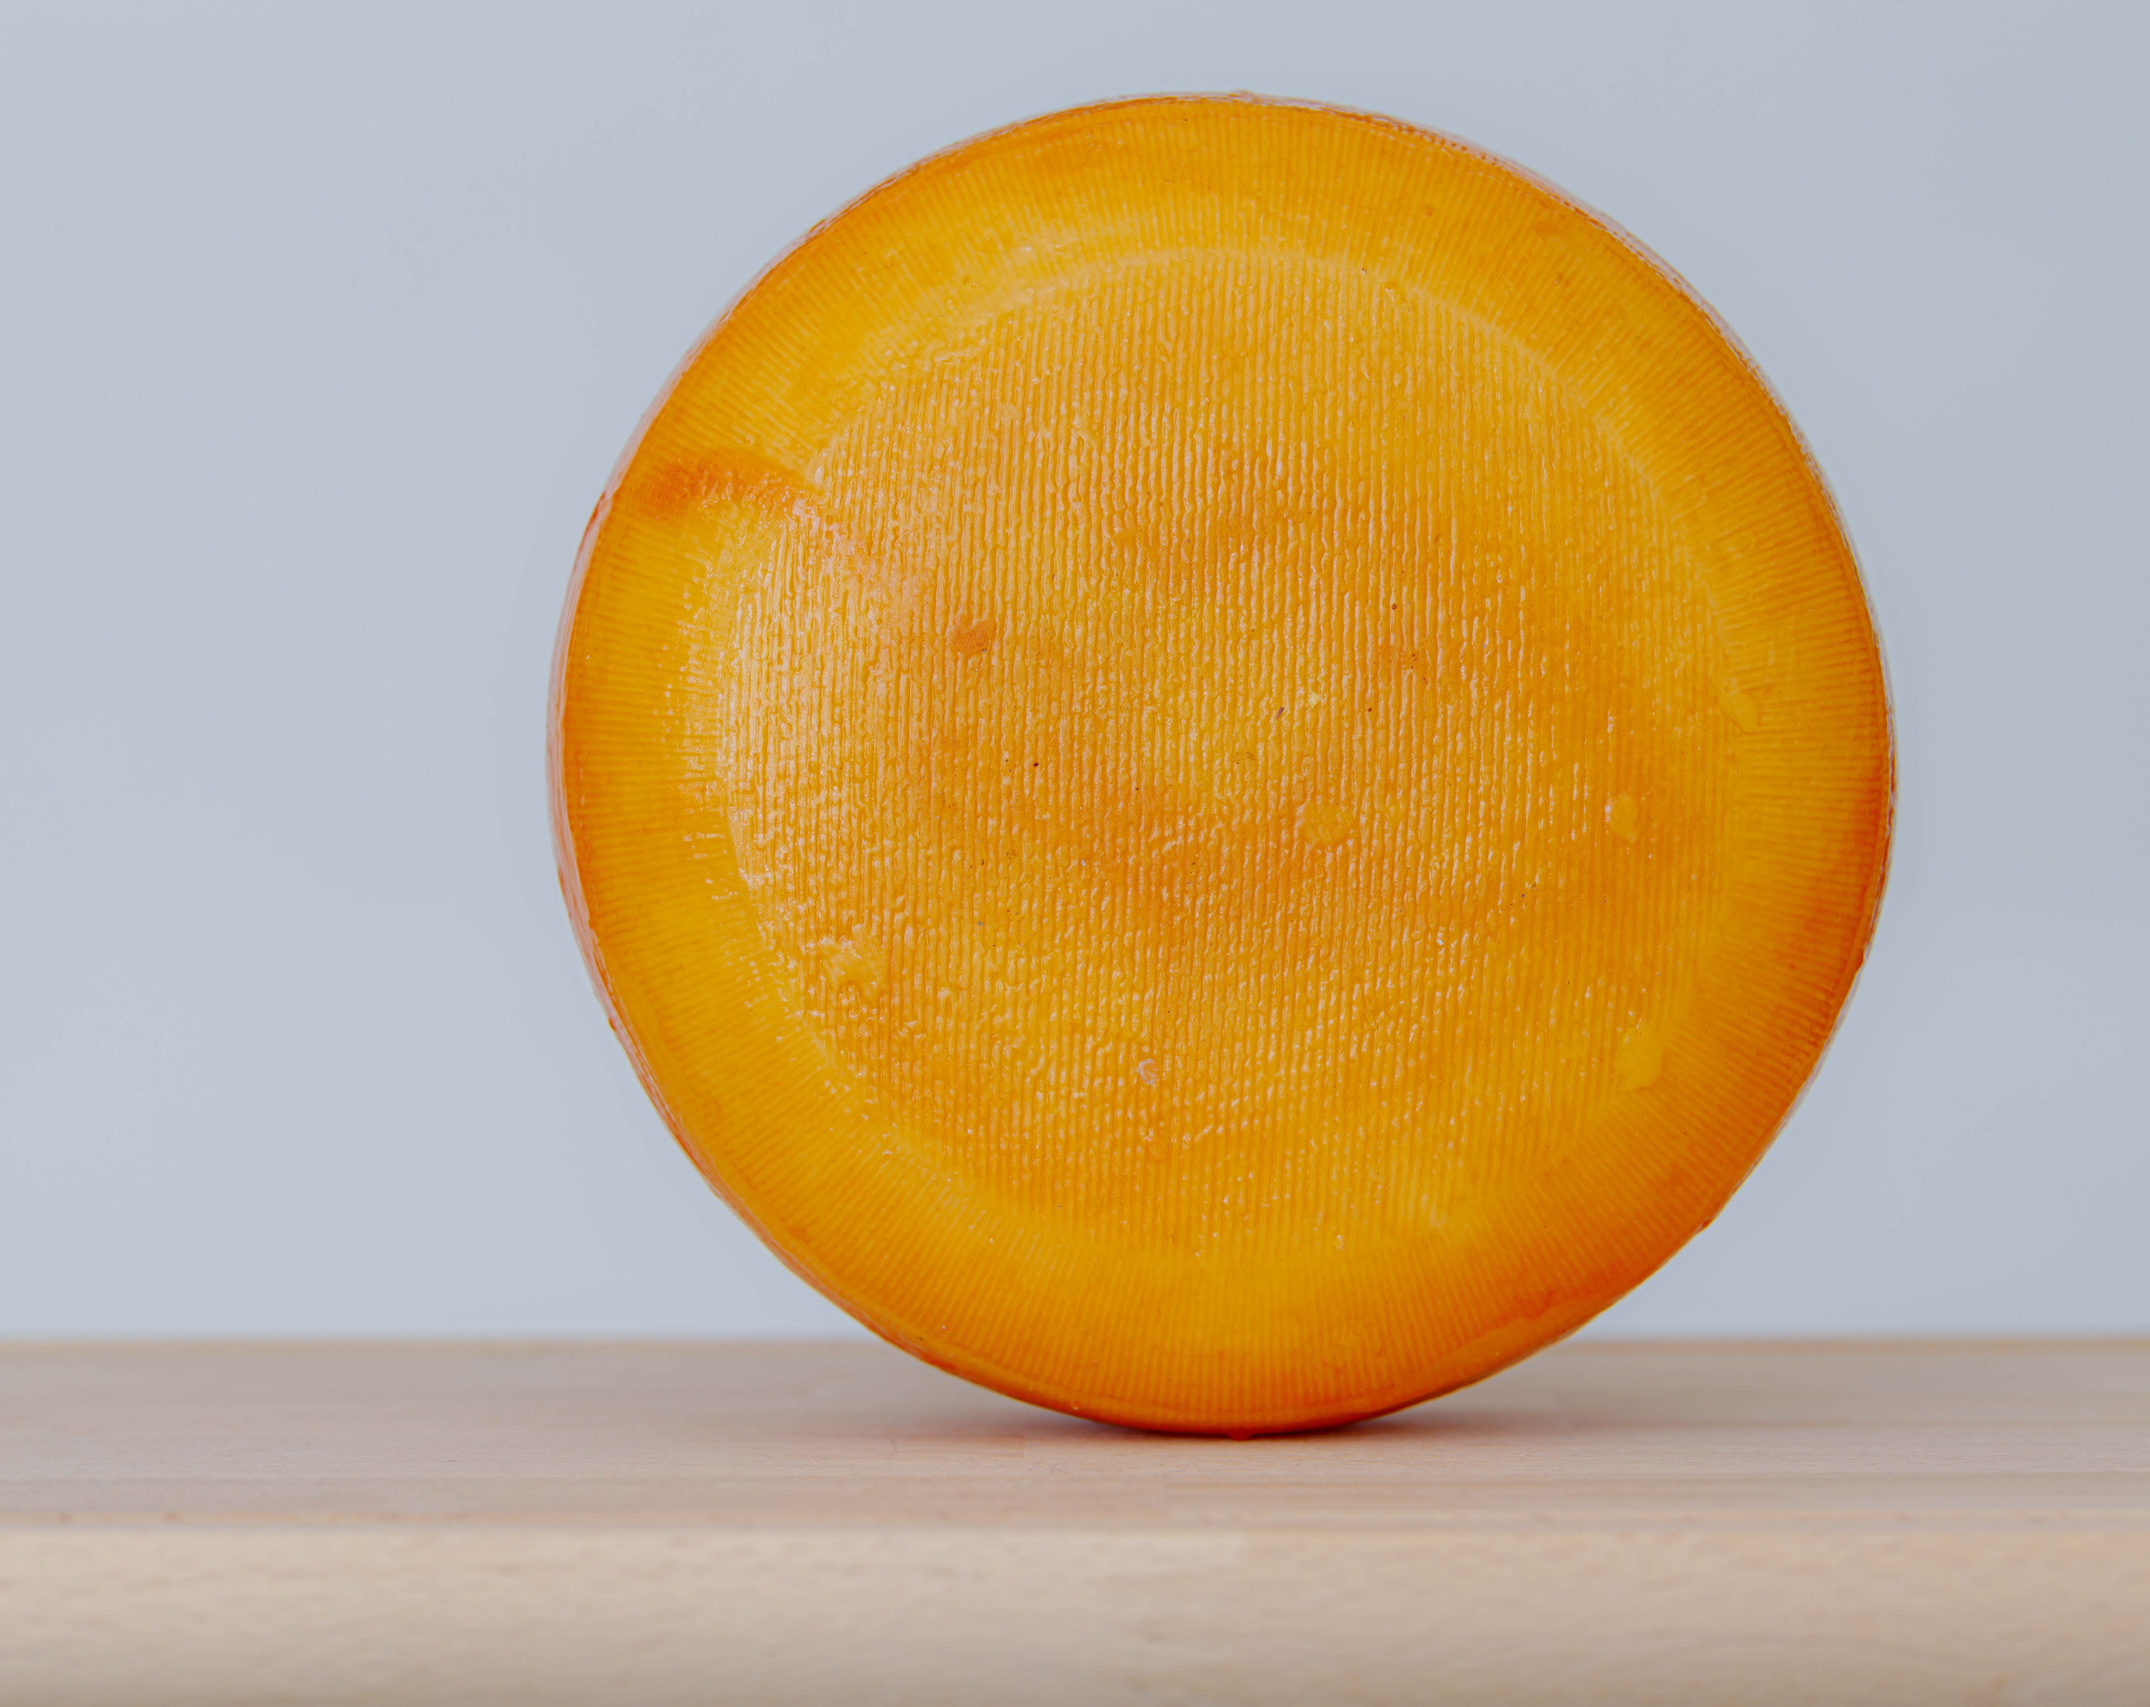 Dairy Is 'Gouda' At Innovating